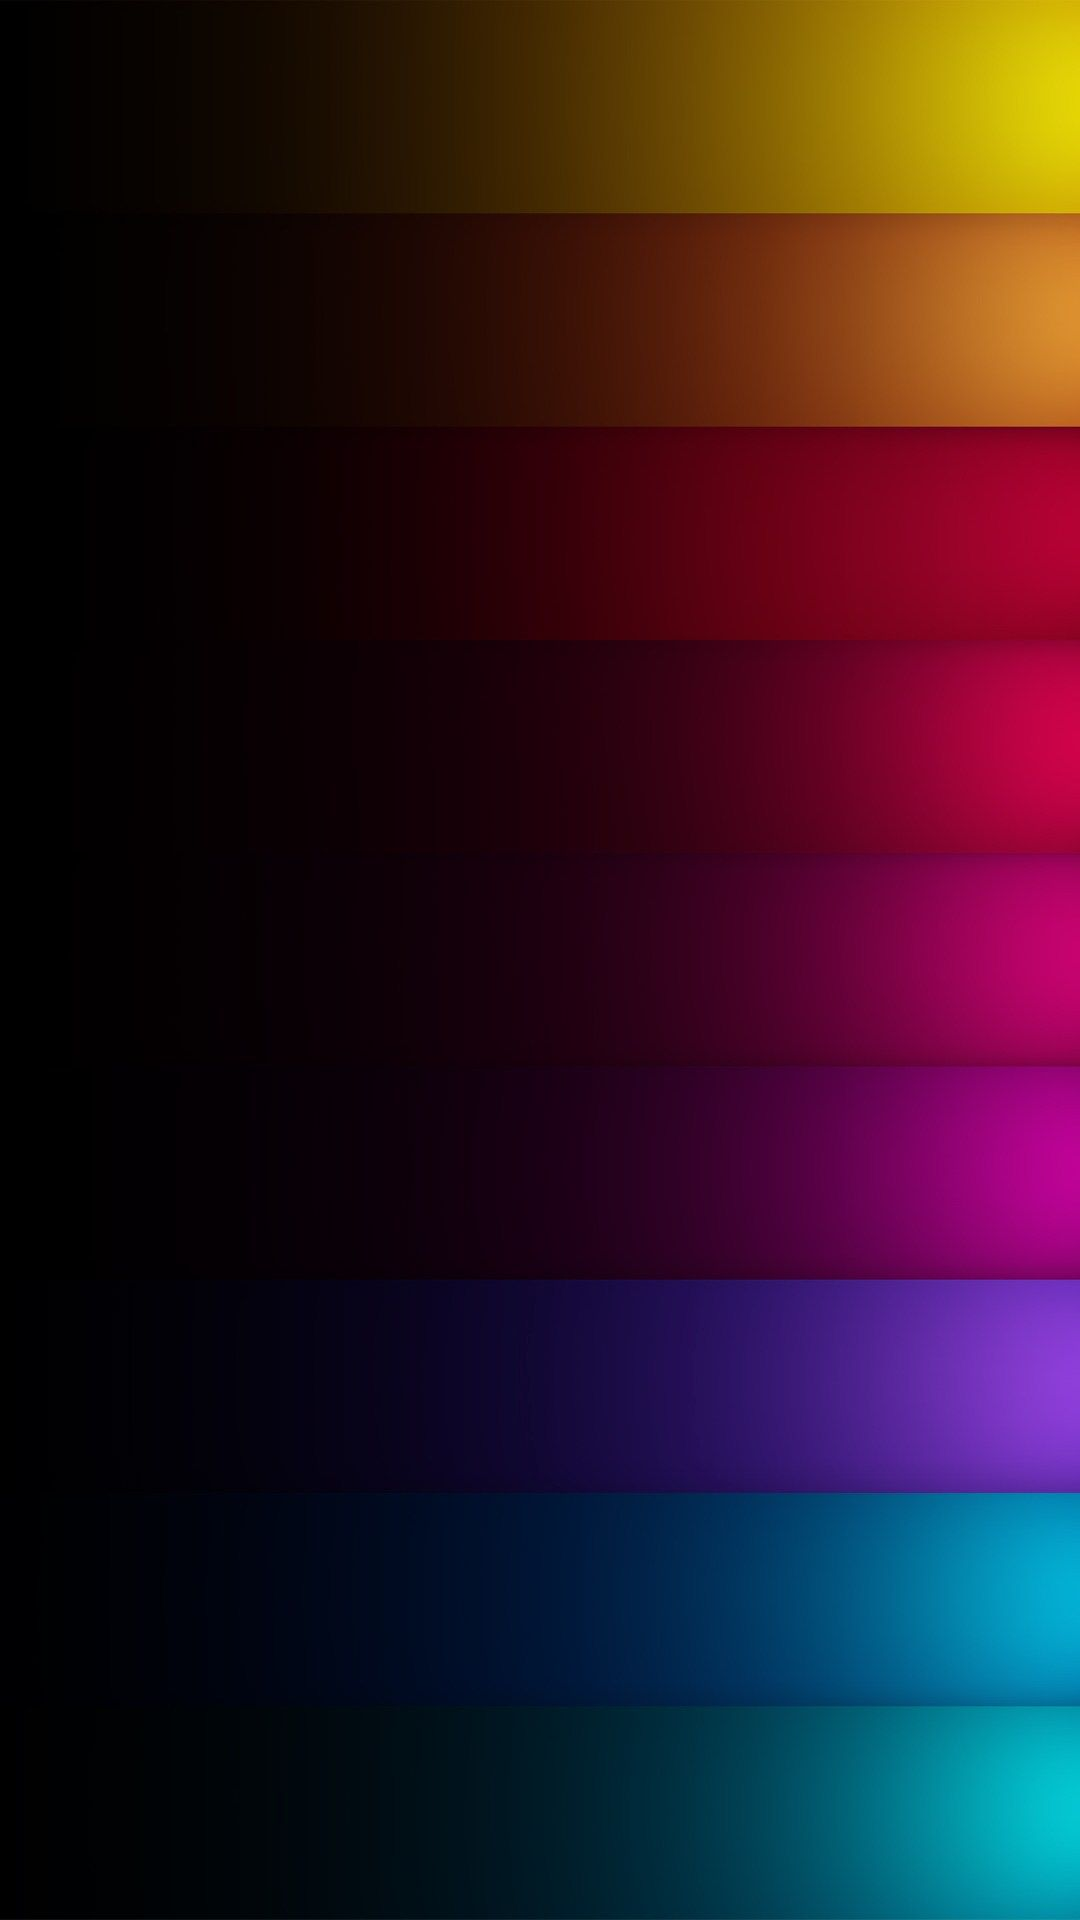 Rainbow Colorful Stripes Iphone 6 Plus Wallpaper Iphone 6 8